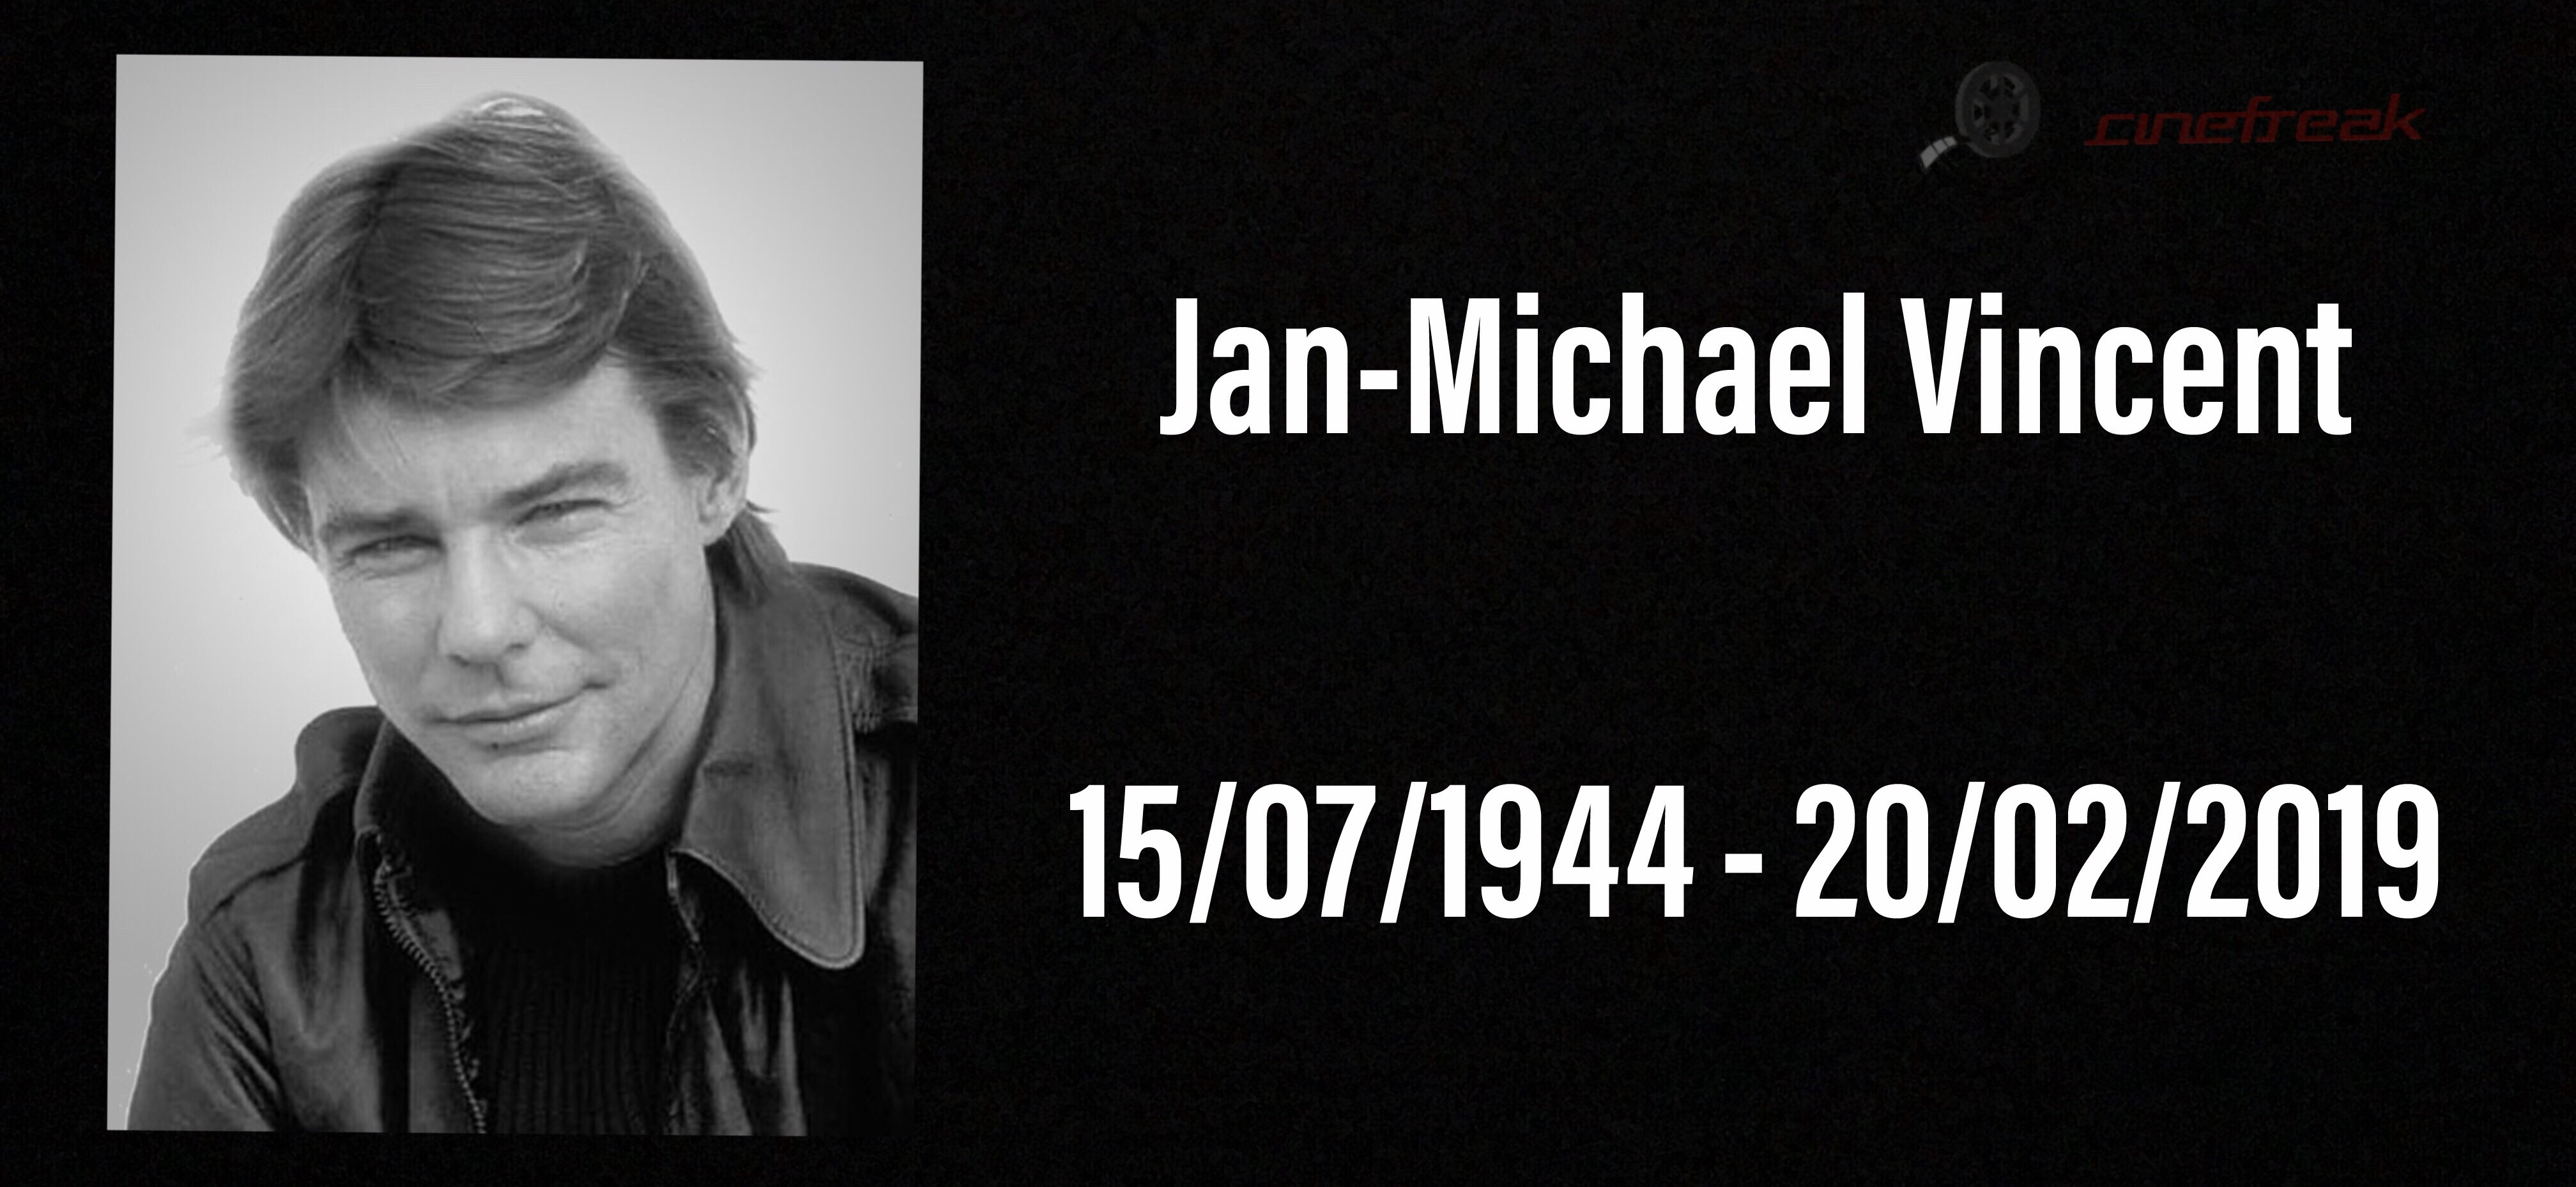 Ator Jan-Michael Vincent morre aos 73 anos 3